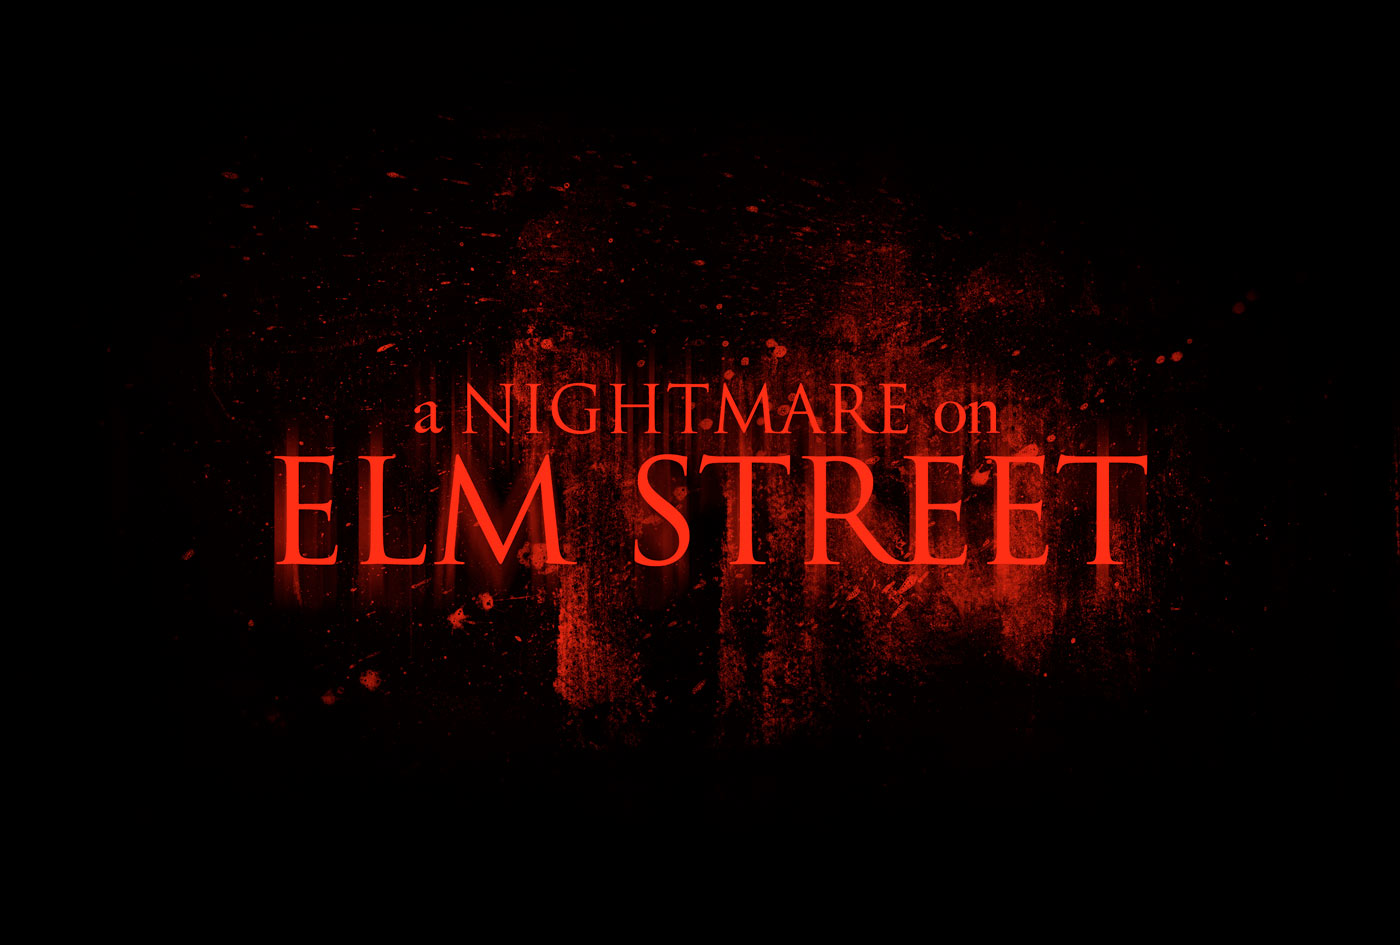 'A Nightmare on Elm Street' Fanclub